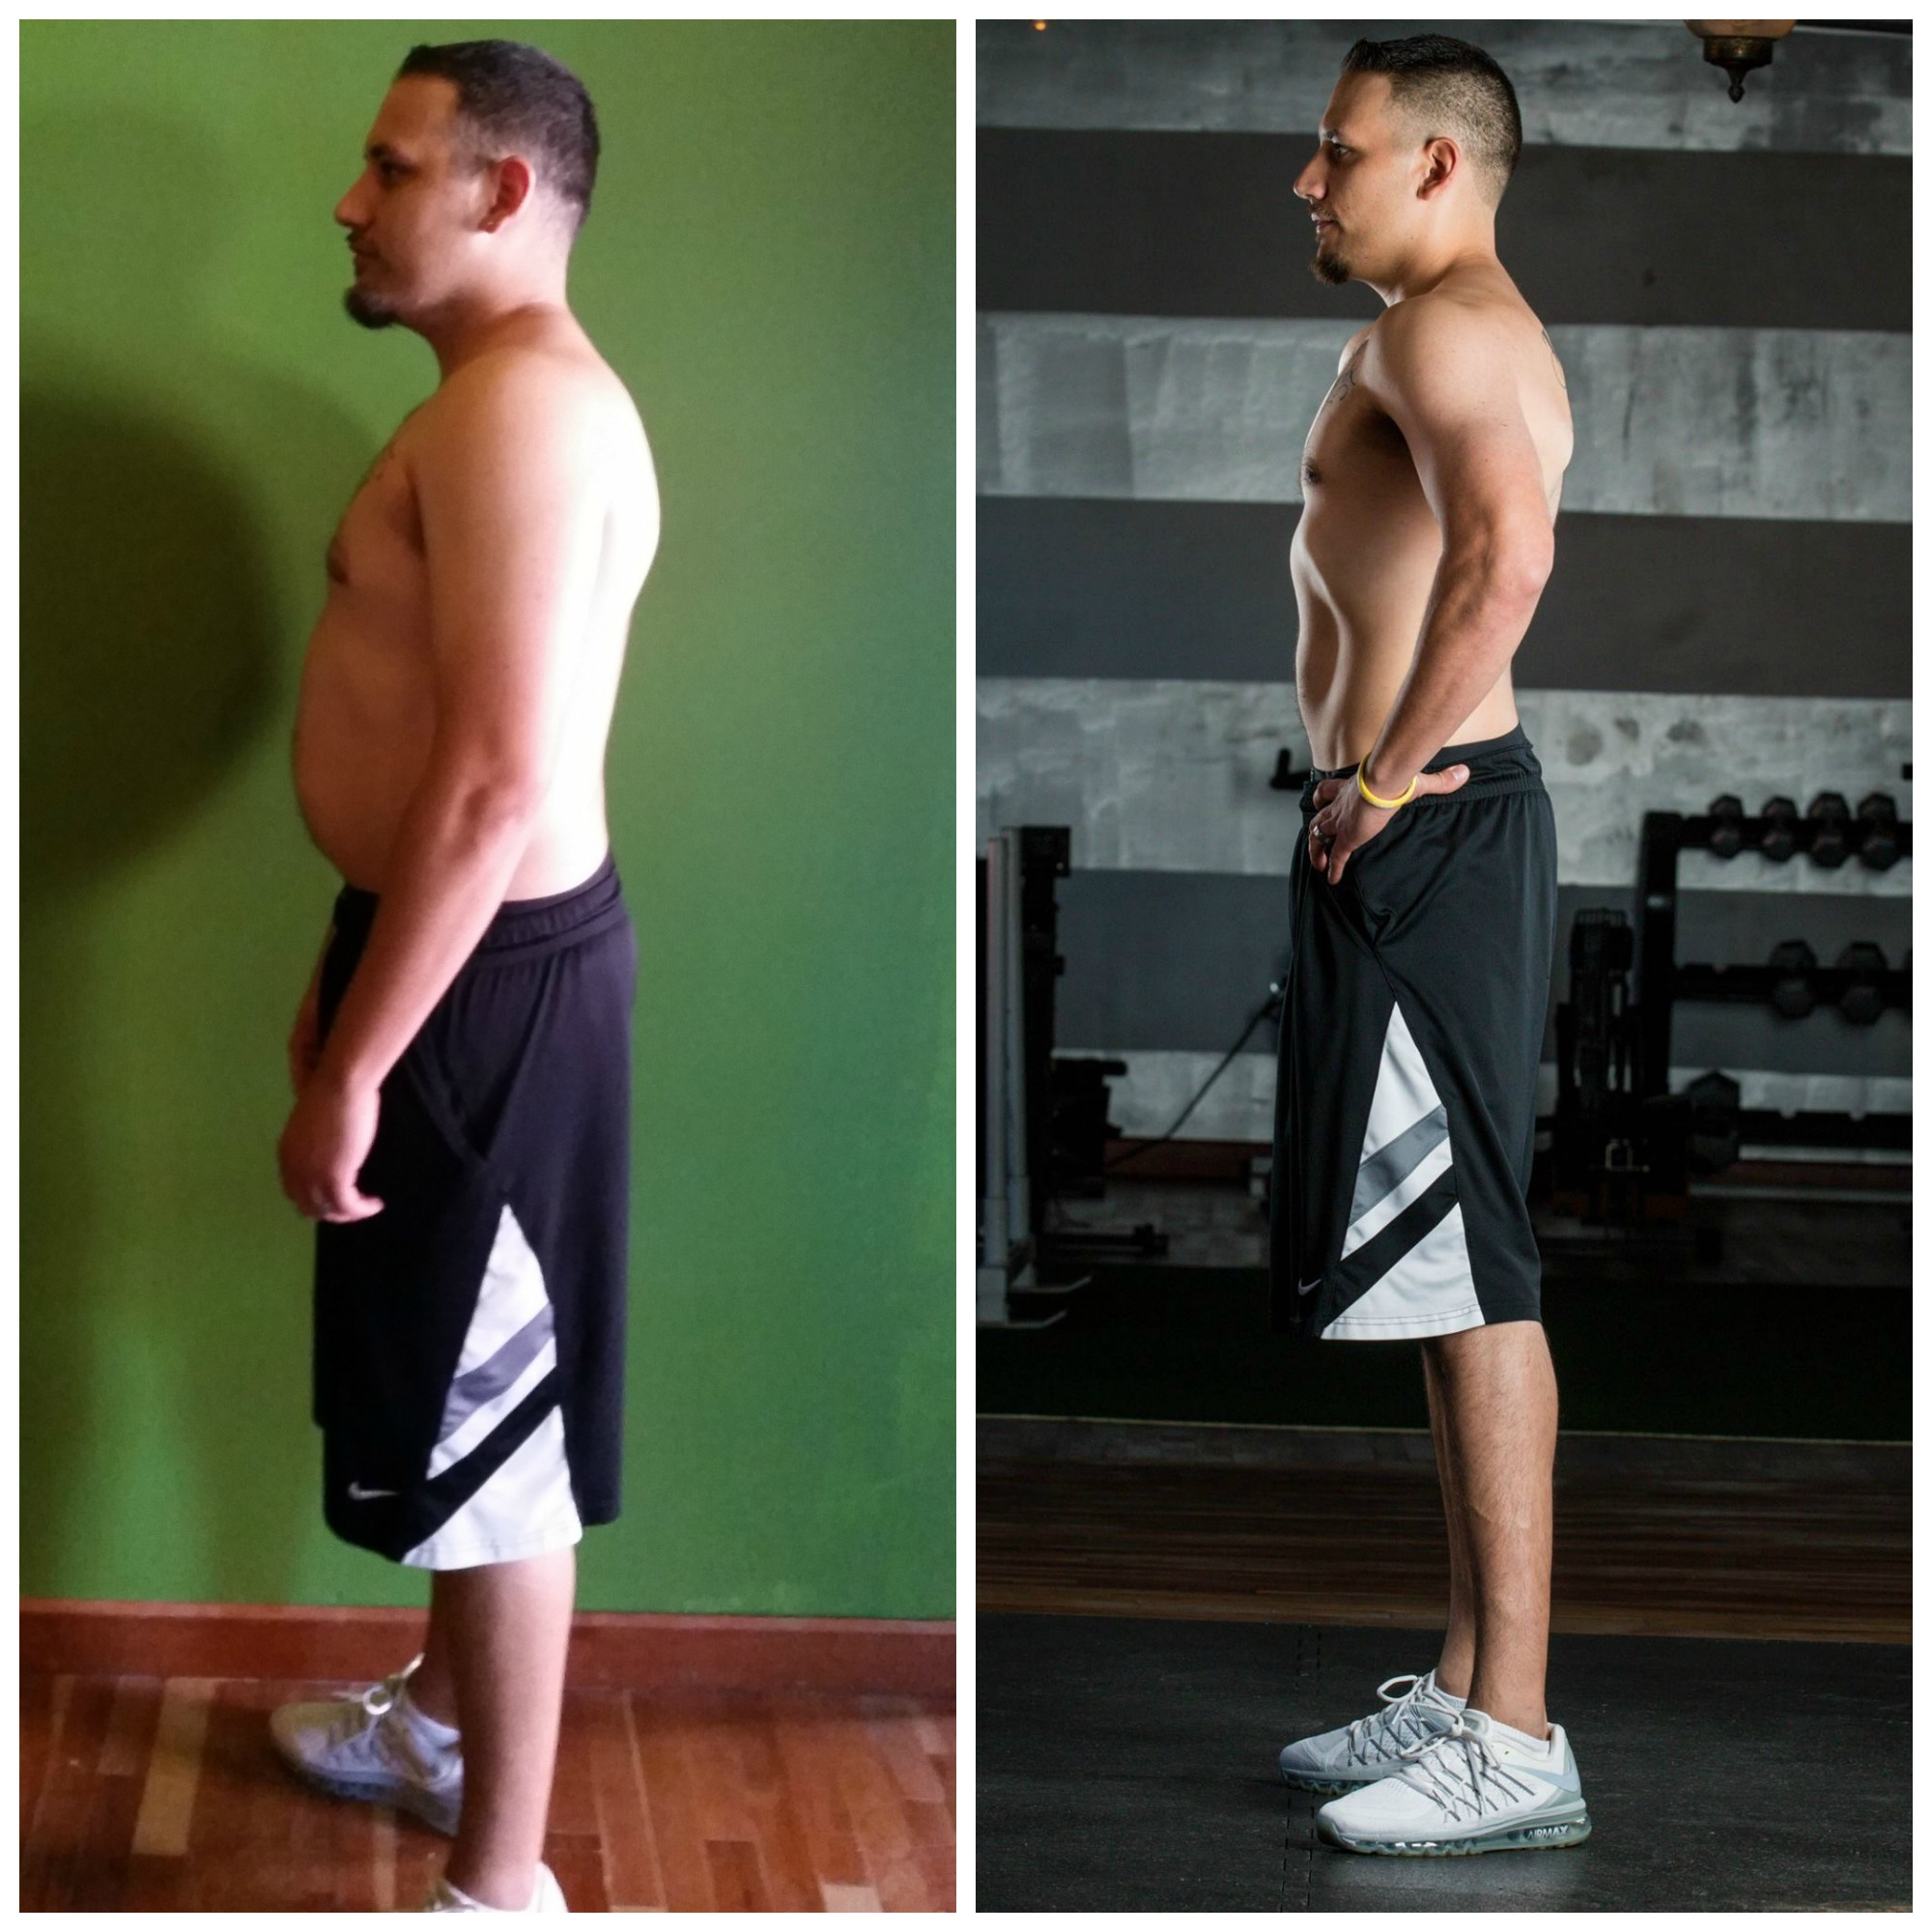 Matt Loses 40 Lbs In 90 Days Freight House Fitness